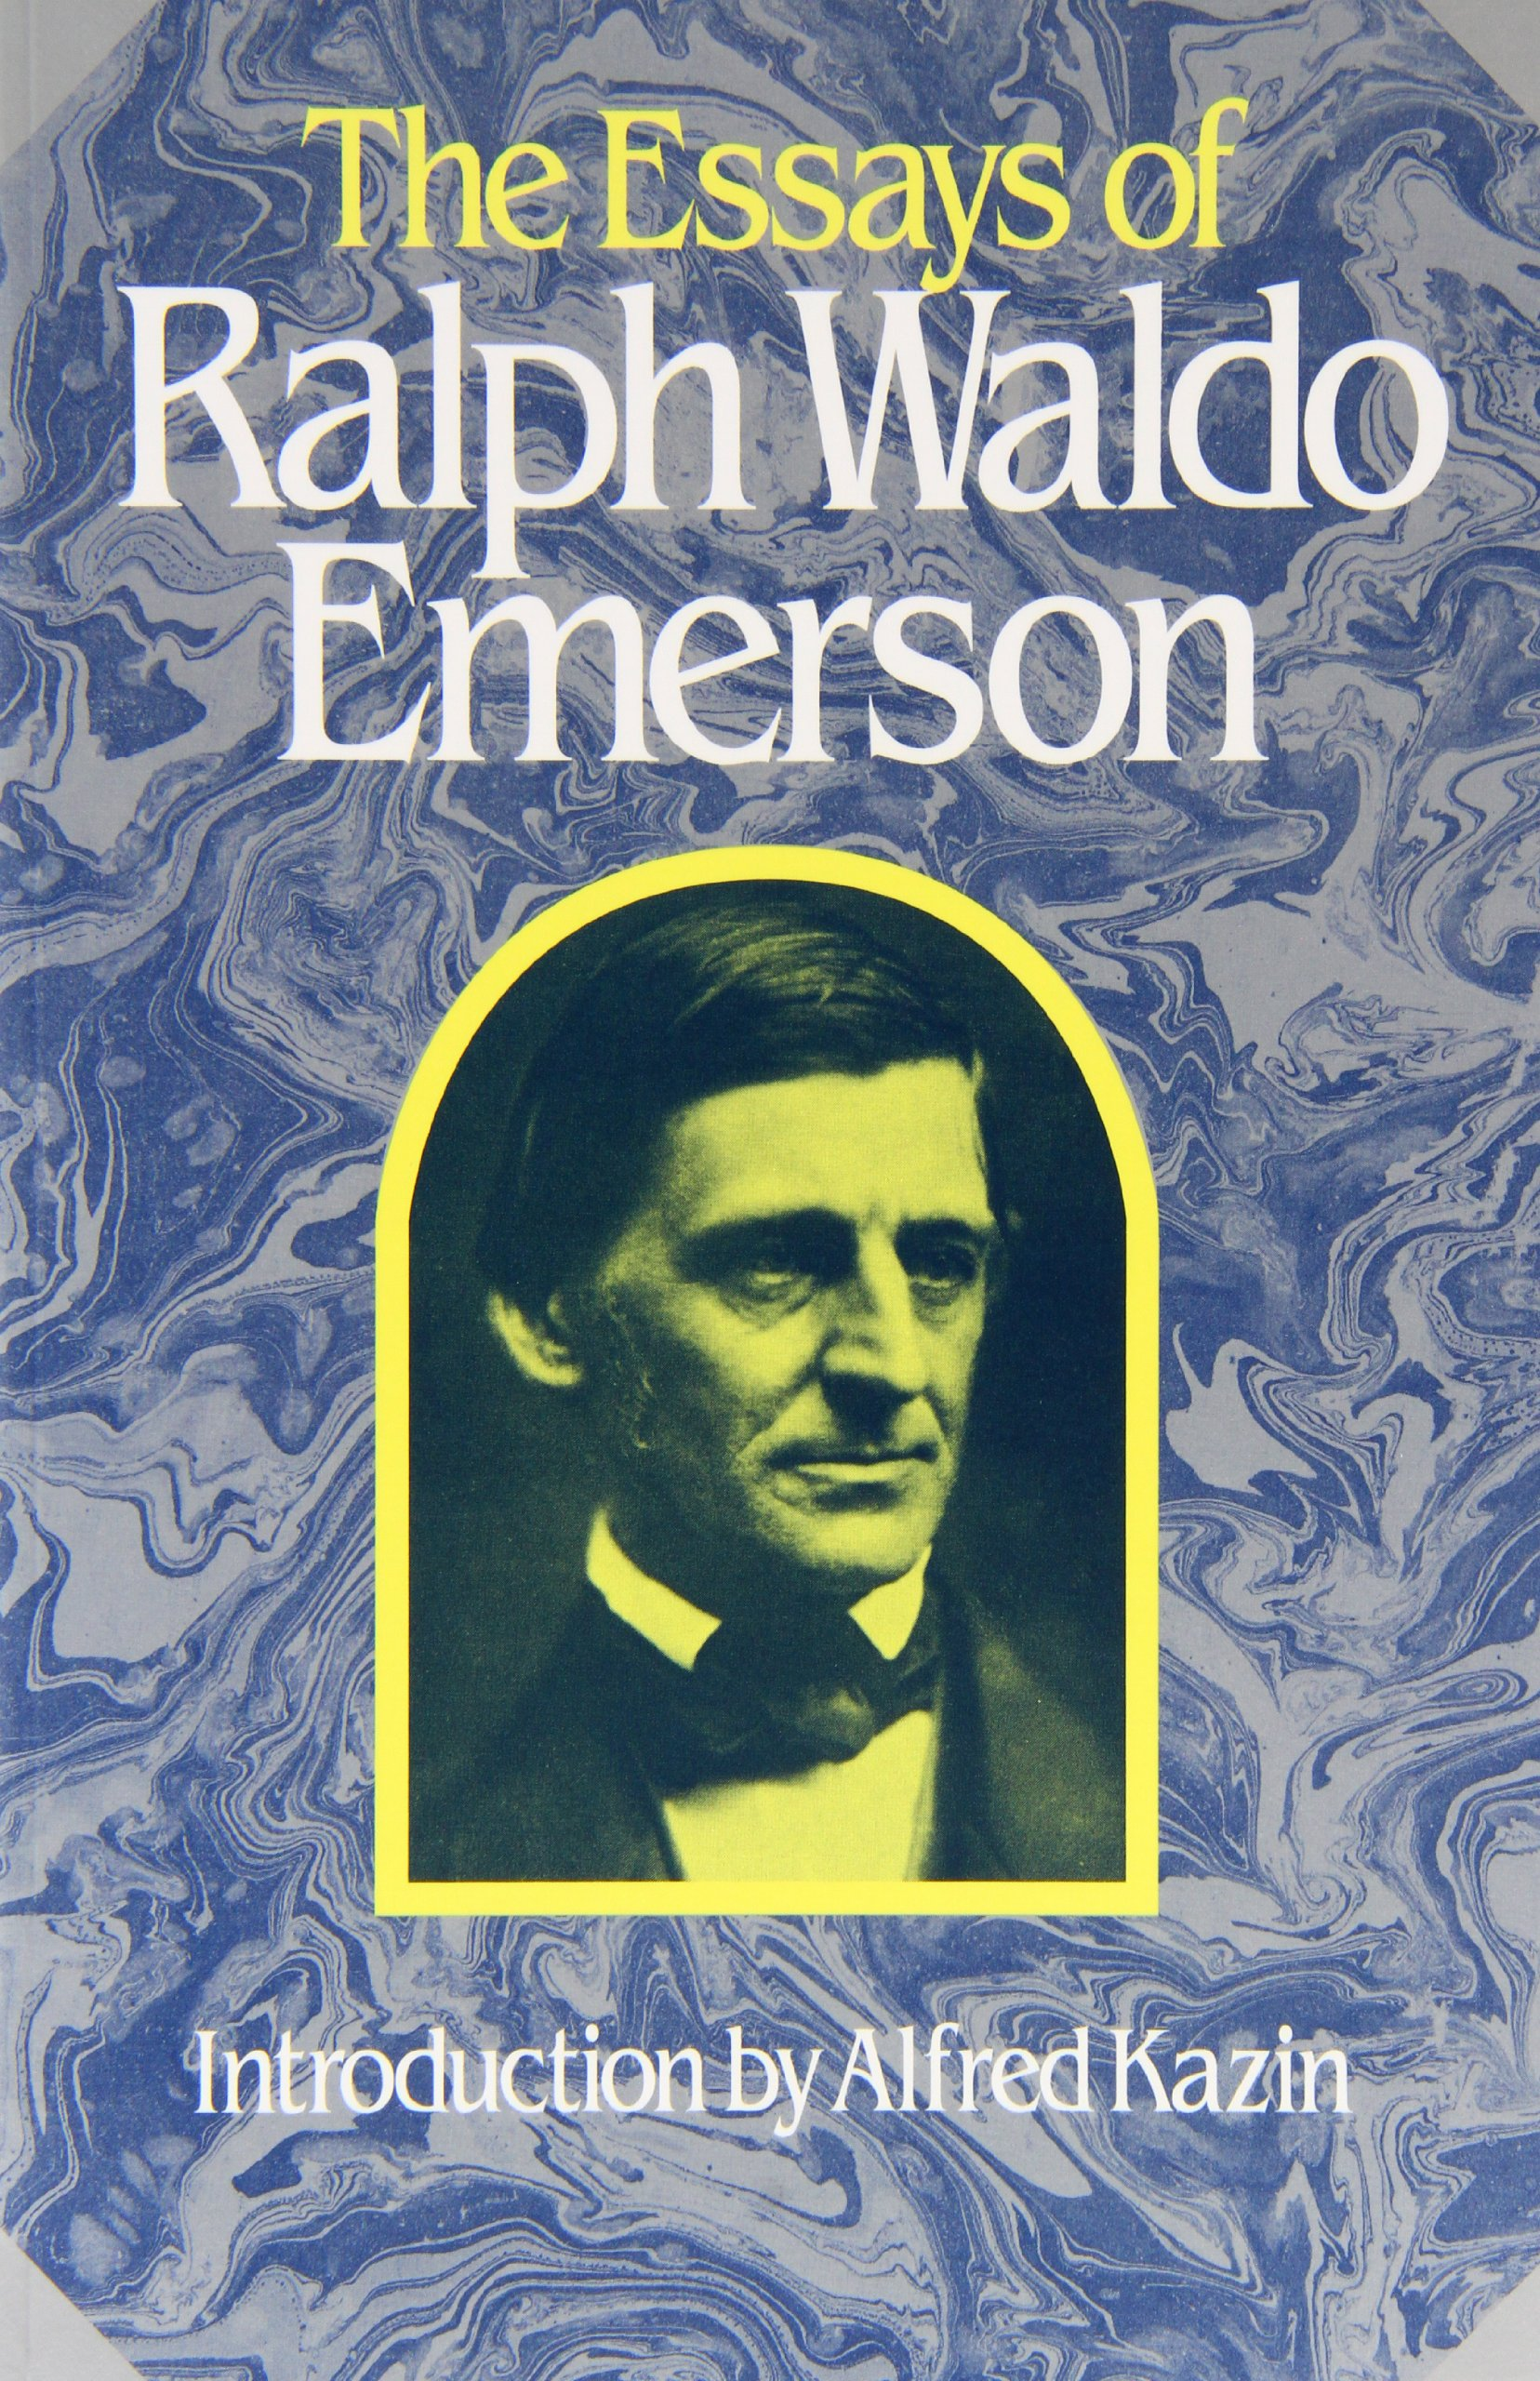 001 Ralph Waldo Emerson Essays Essay Example Unusual Nature And Selected By Pdf Download First Second Series Full